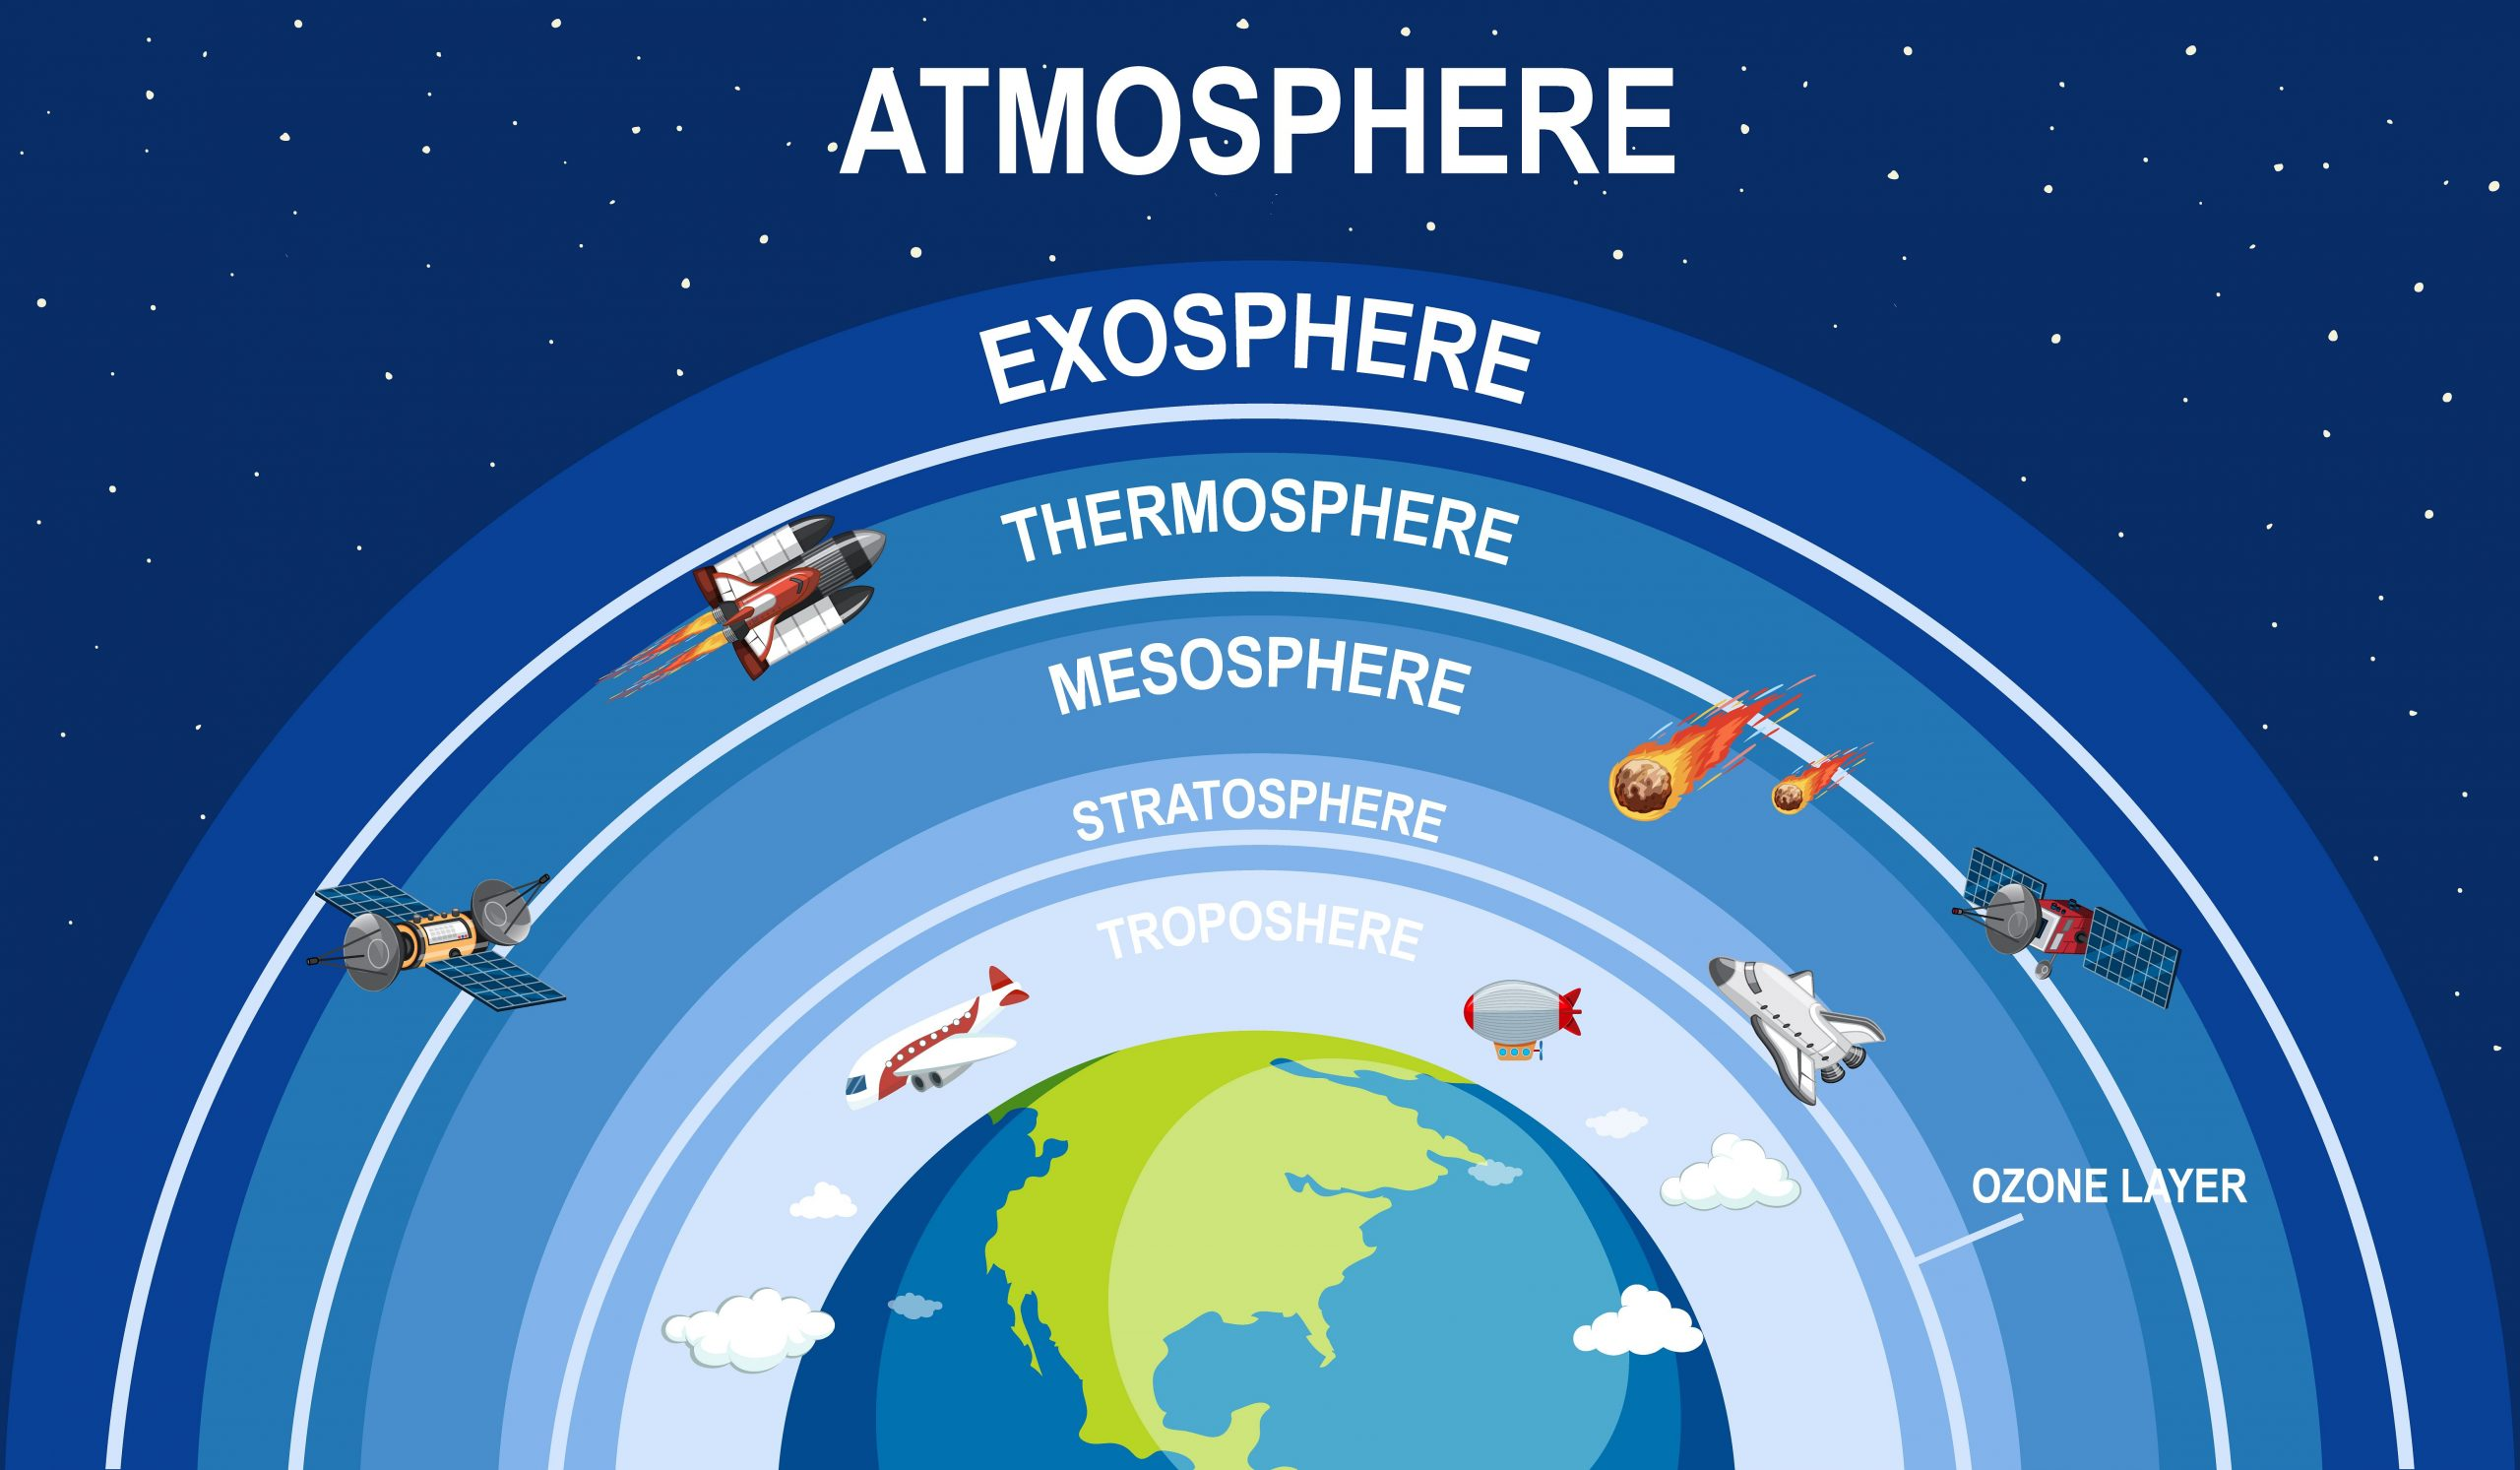 World Ozone Day: What's the status of ozone layer now? | EastMojo